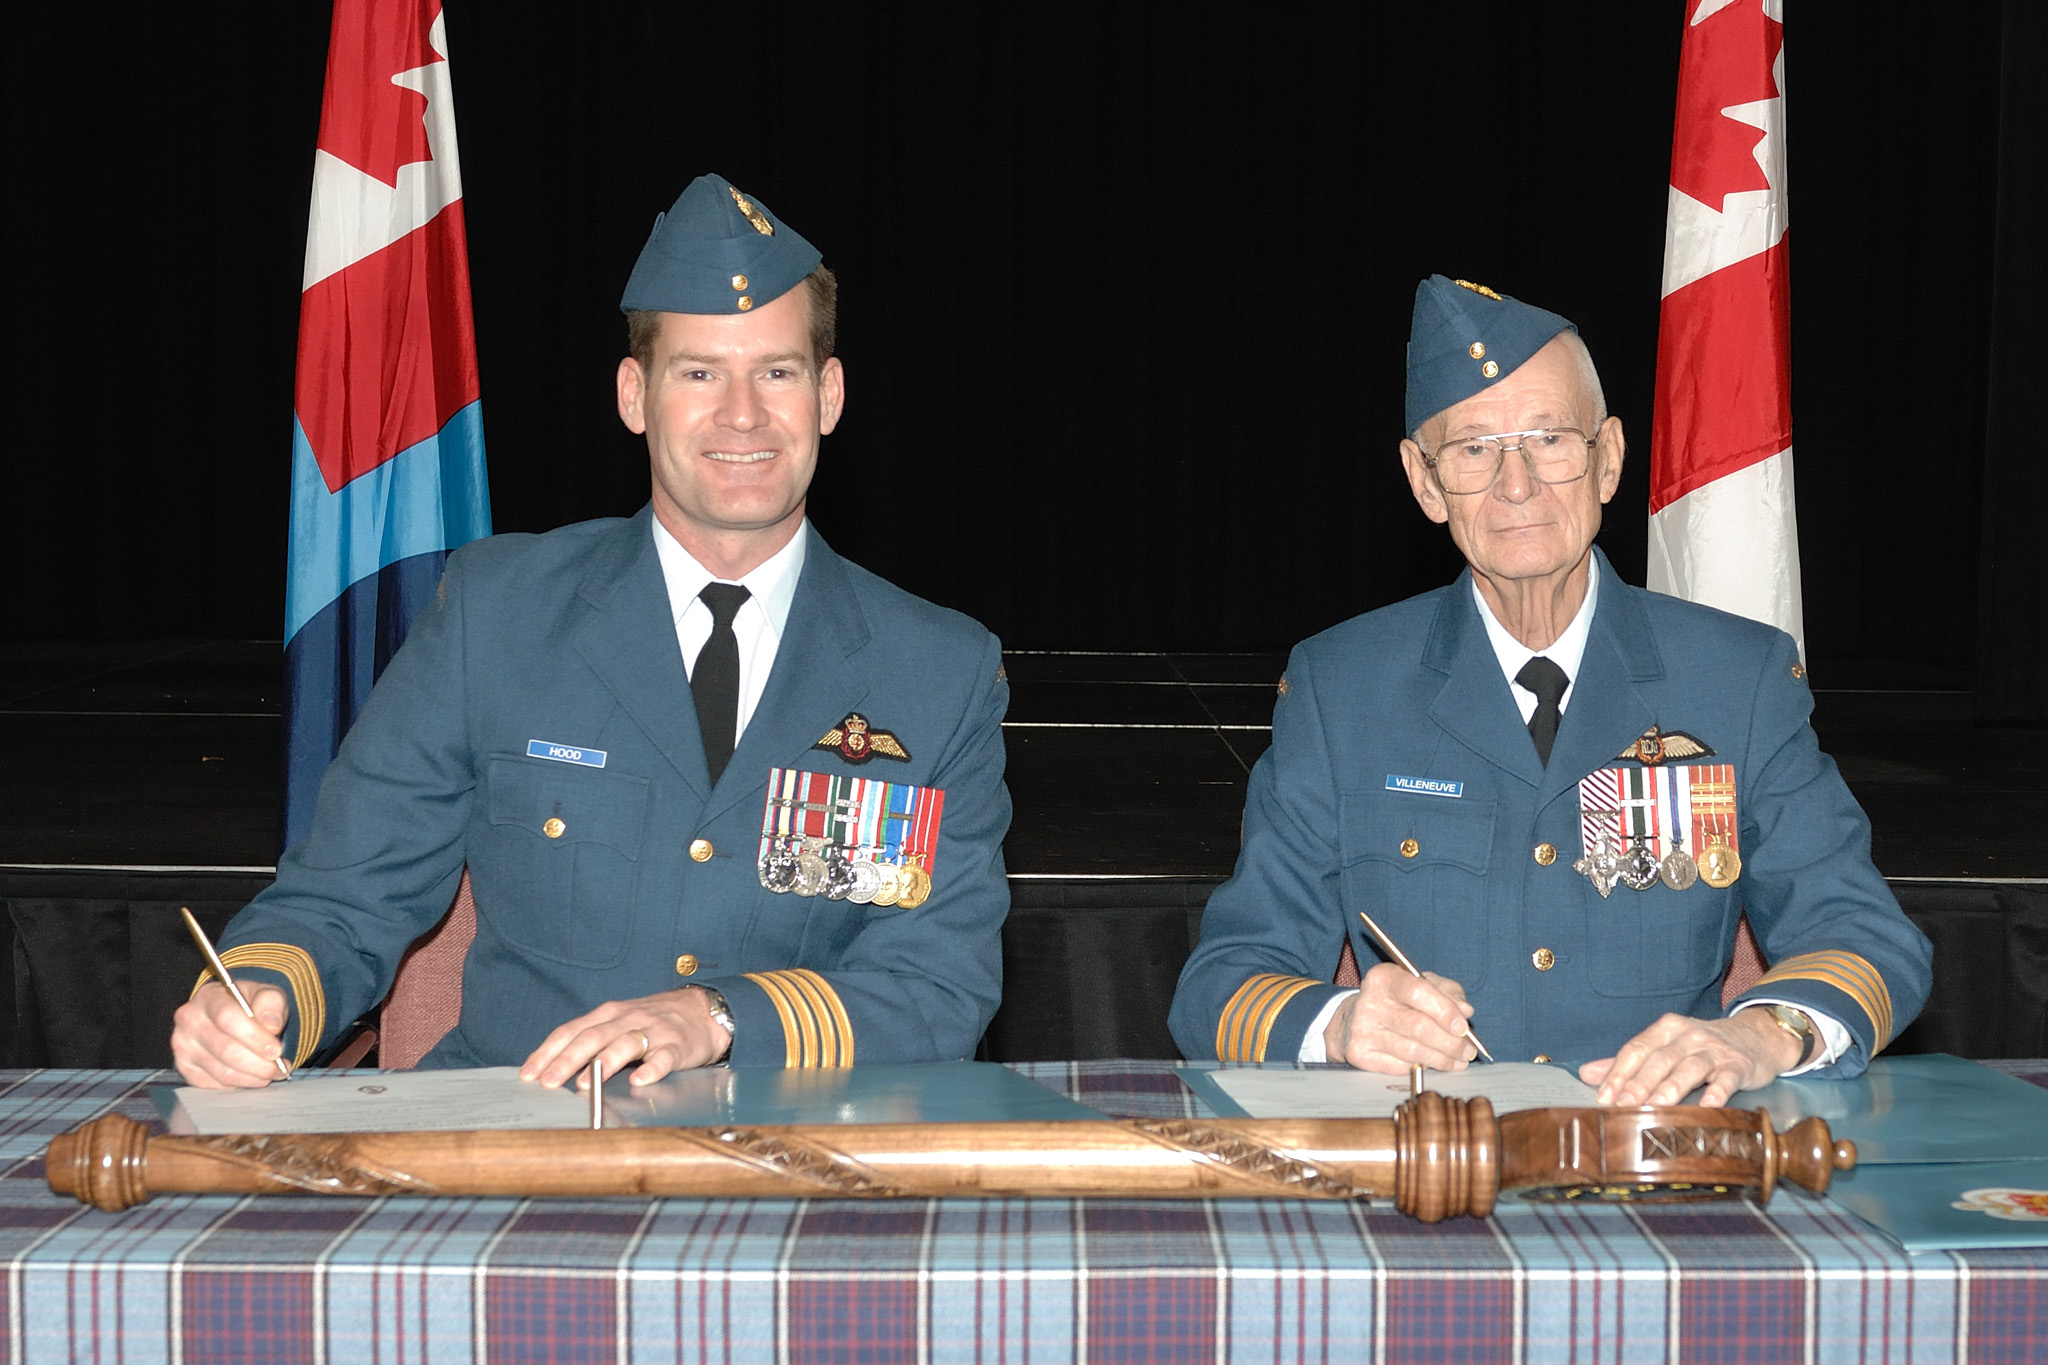 Le 4 décembre 2008, le colonel Mike Hood (à gauche), commandant de la 8e Escadre Trenton, et le lieutenant-colonel (à la retraite) Fern Villeneuve signent les documents officialisant la nomination du lieutenant-colonel Villeneuve comme colonel honoraire du 8e Escadron de maintenance (Air) à Trenton, en Ontario. PHOTO : Soldat Tina Gillies, TN2008-0816-01